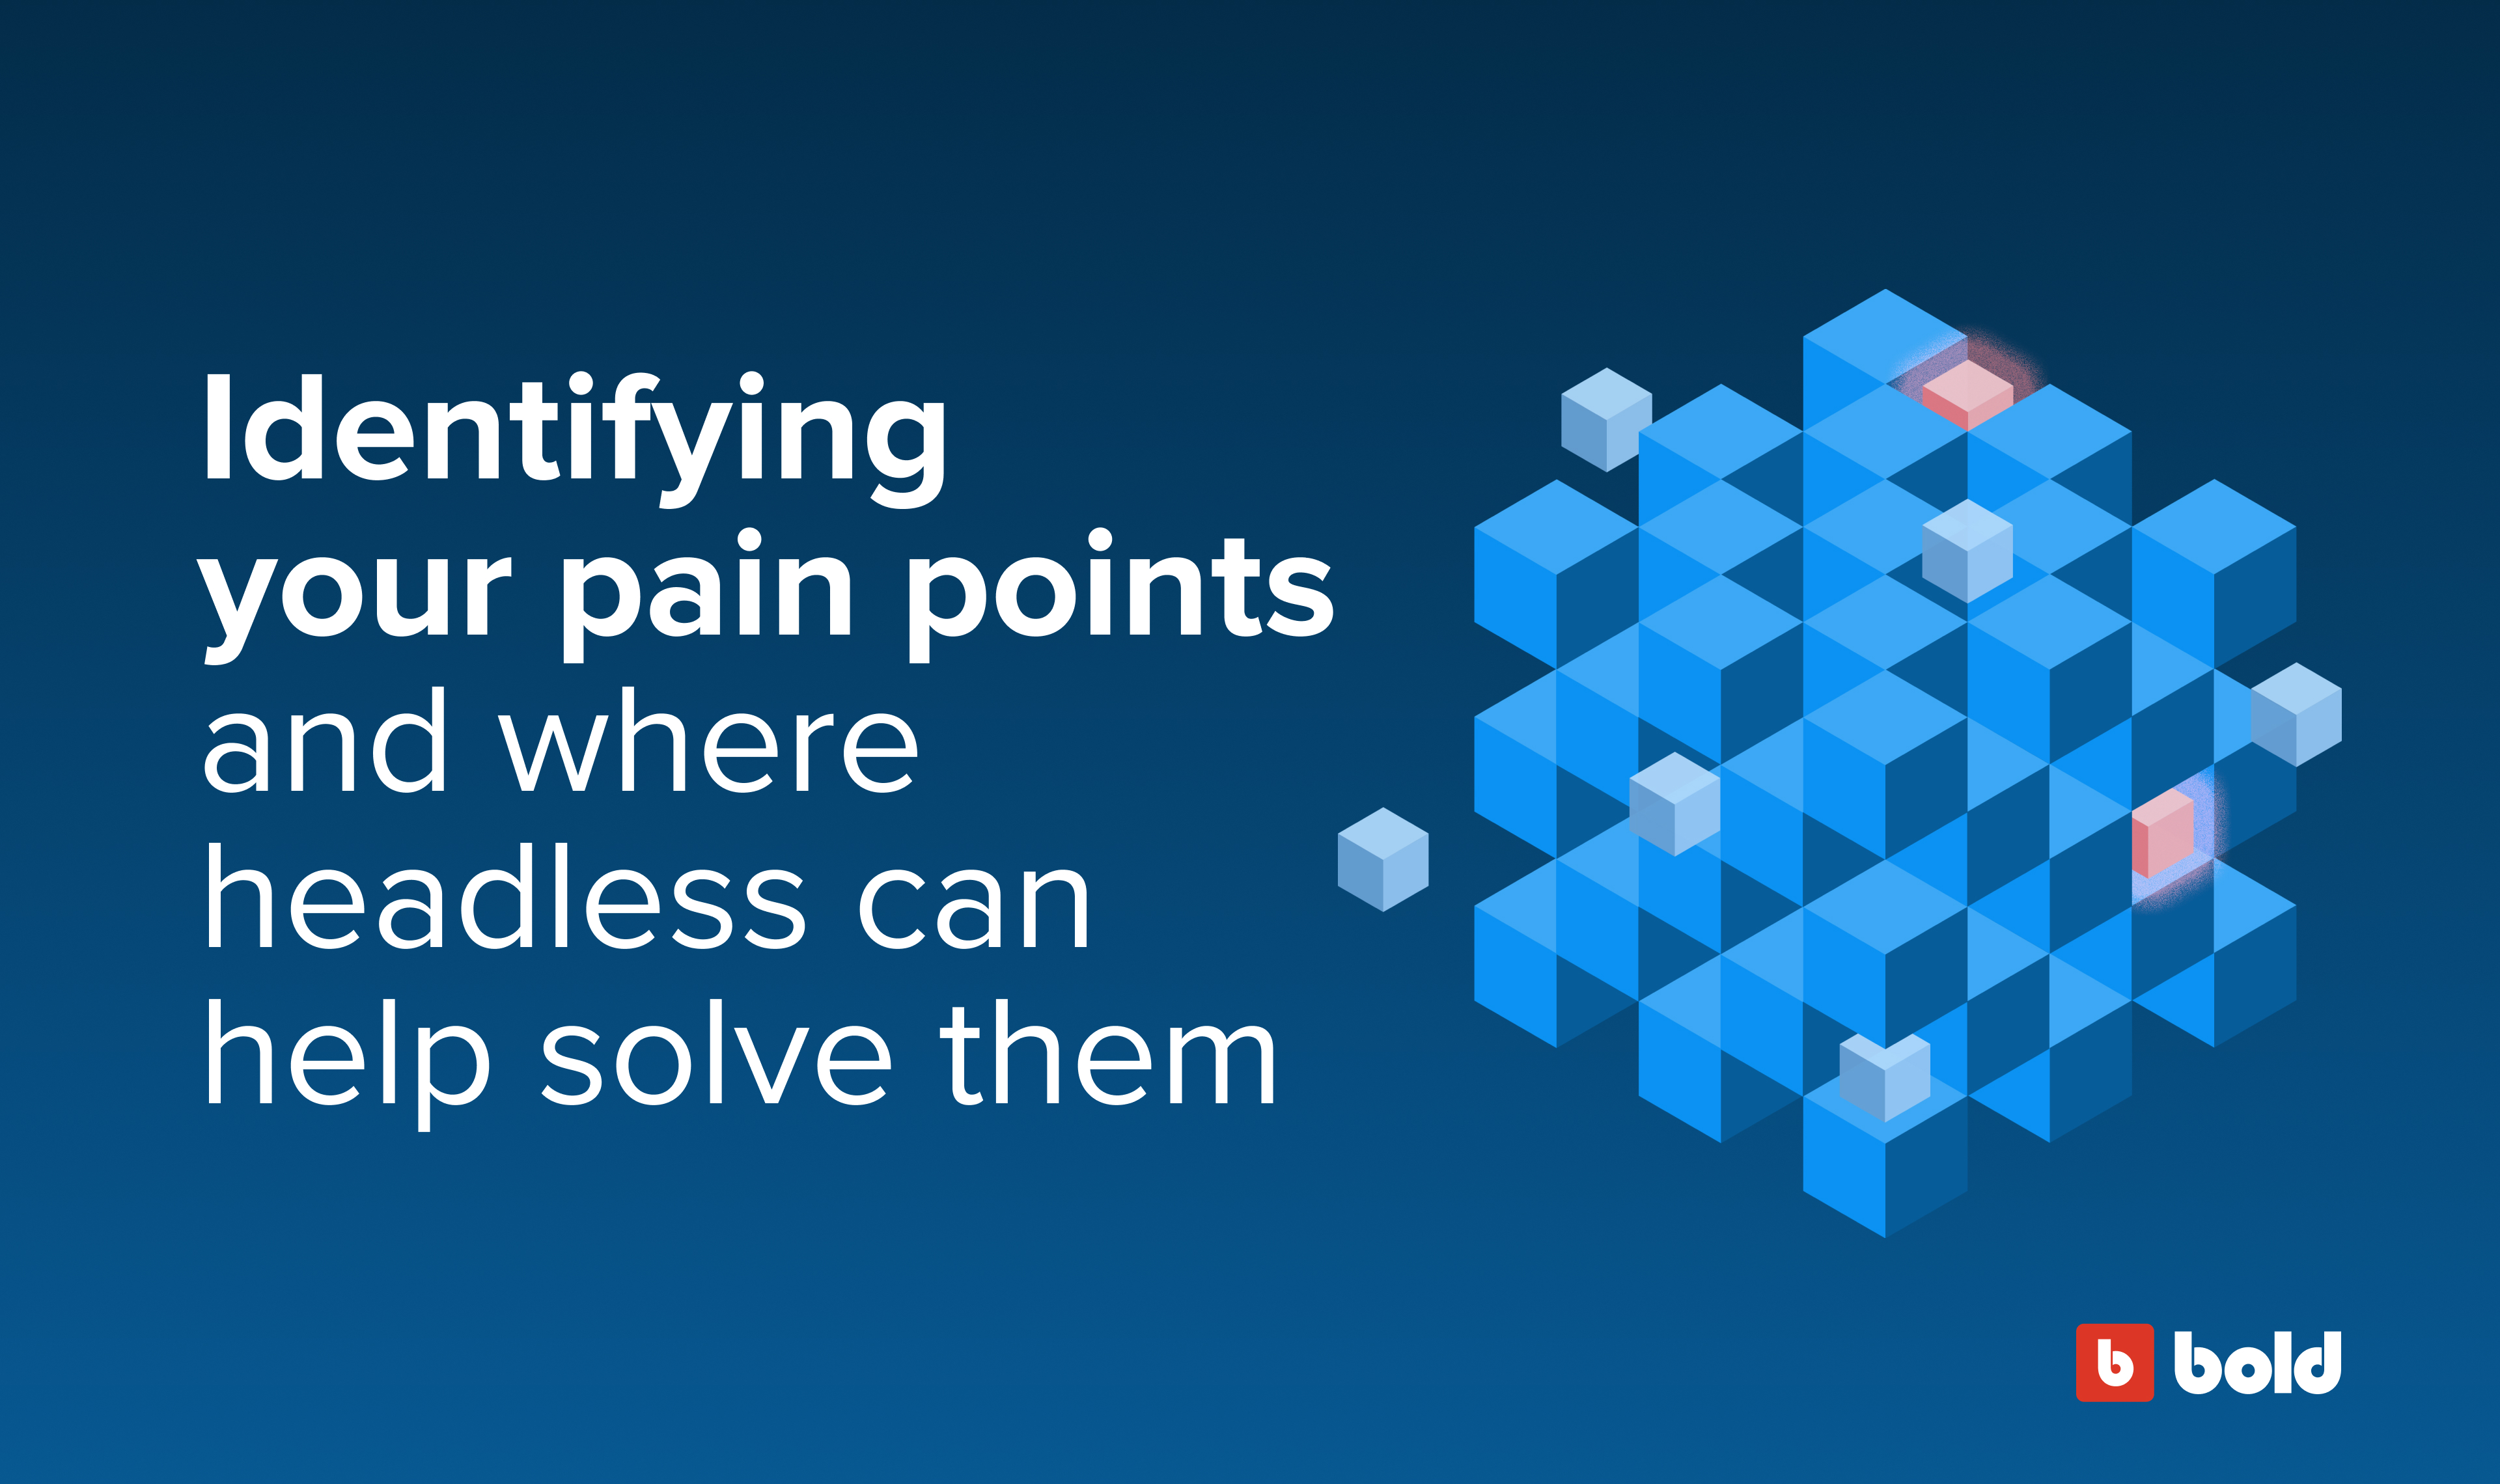 How headless can solve your pain points